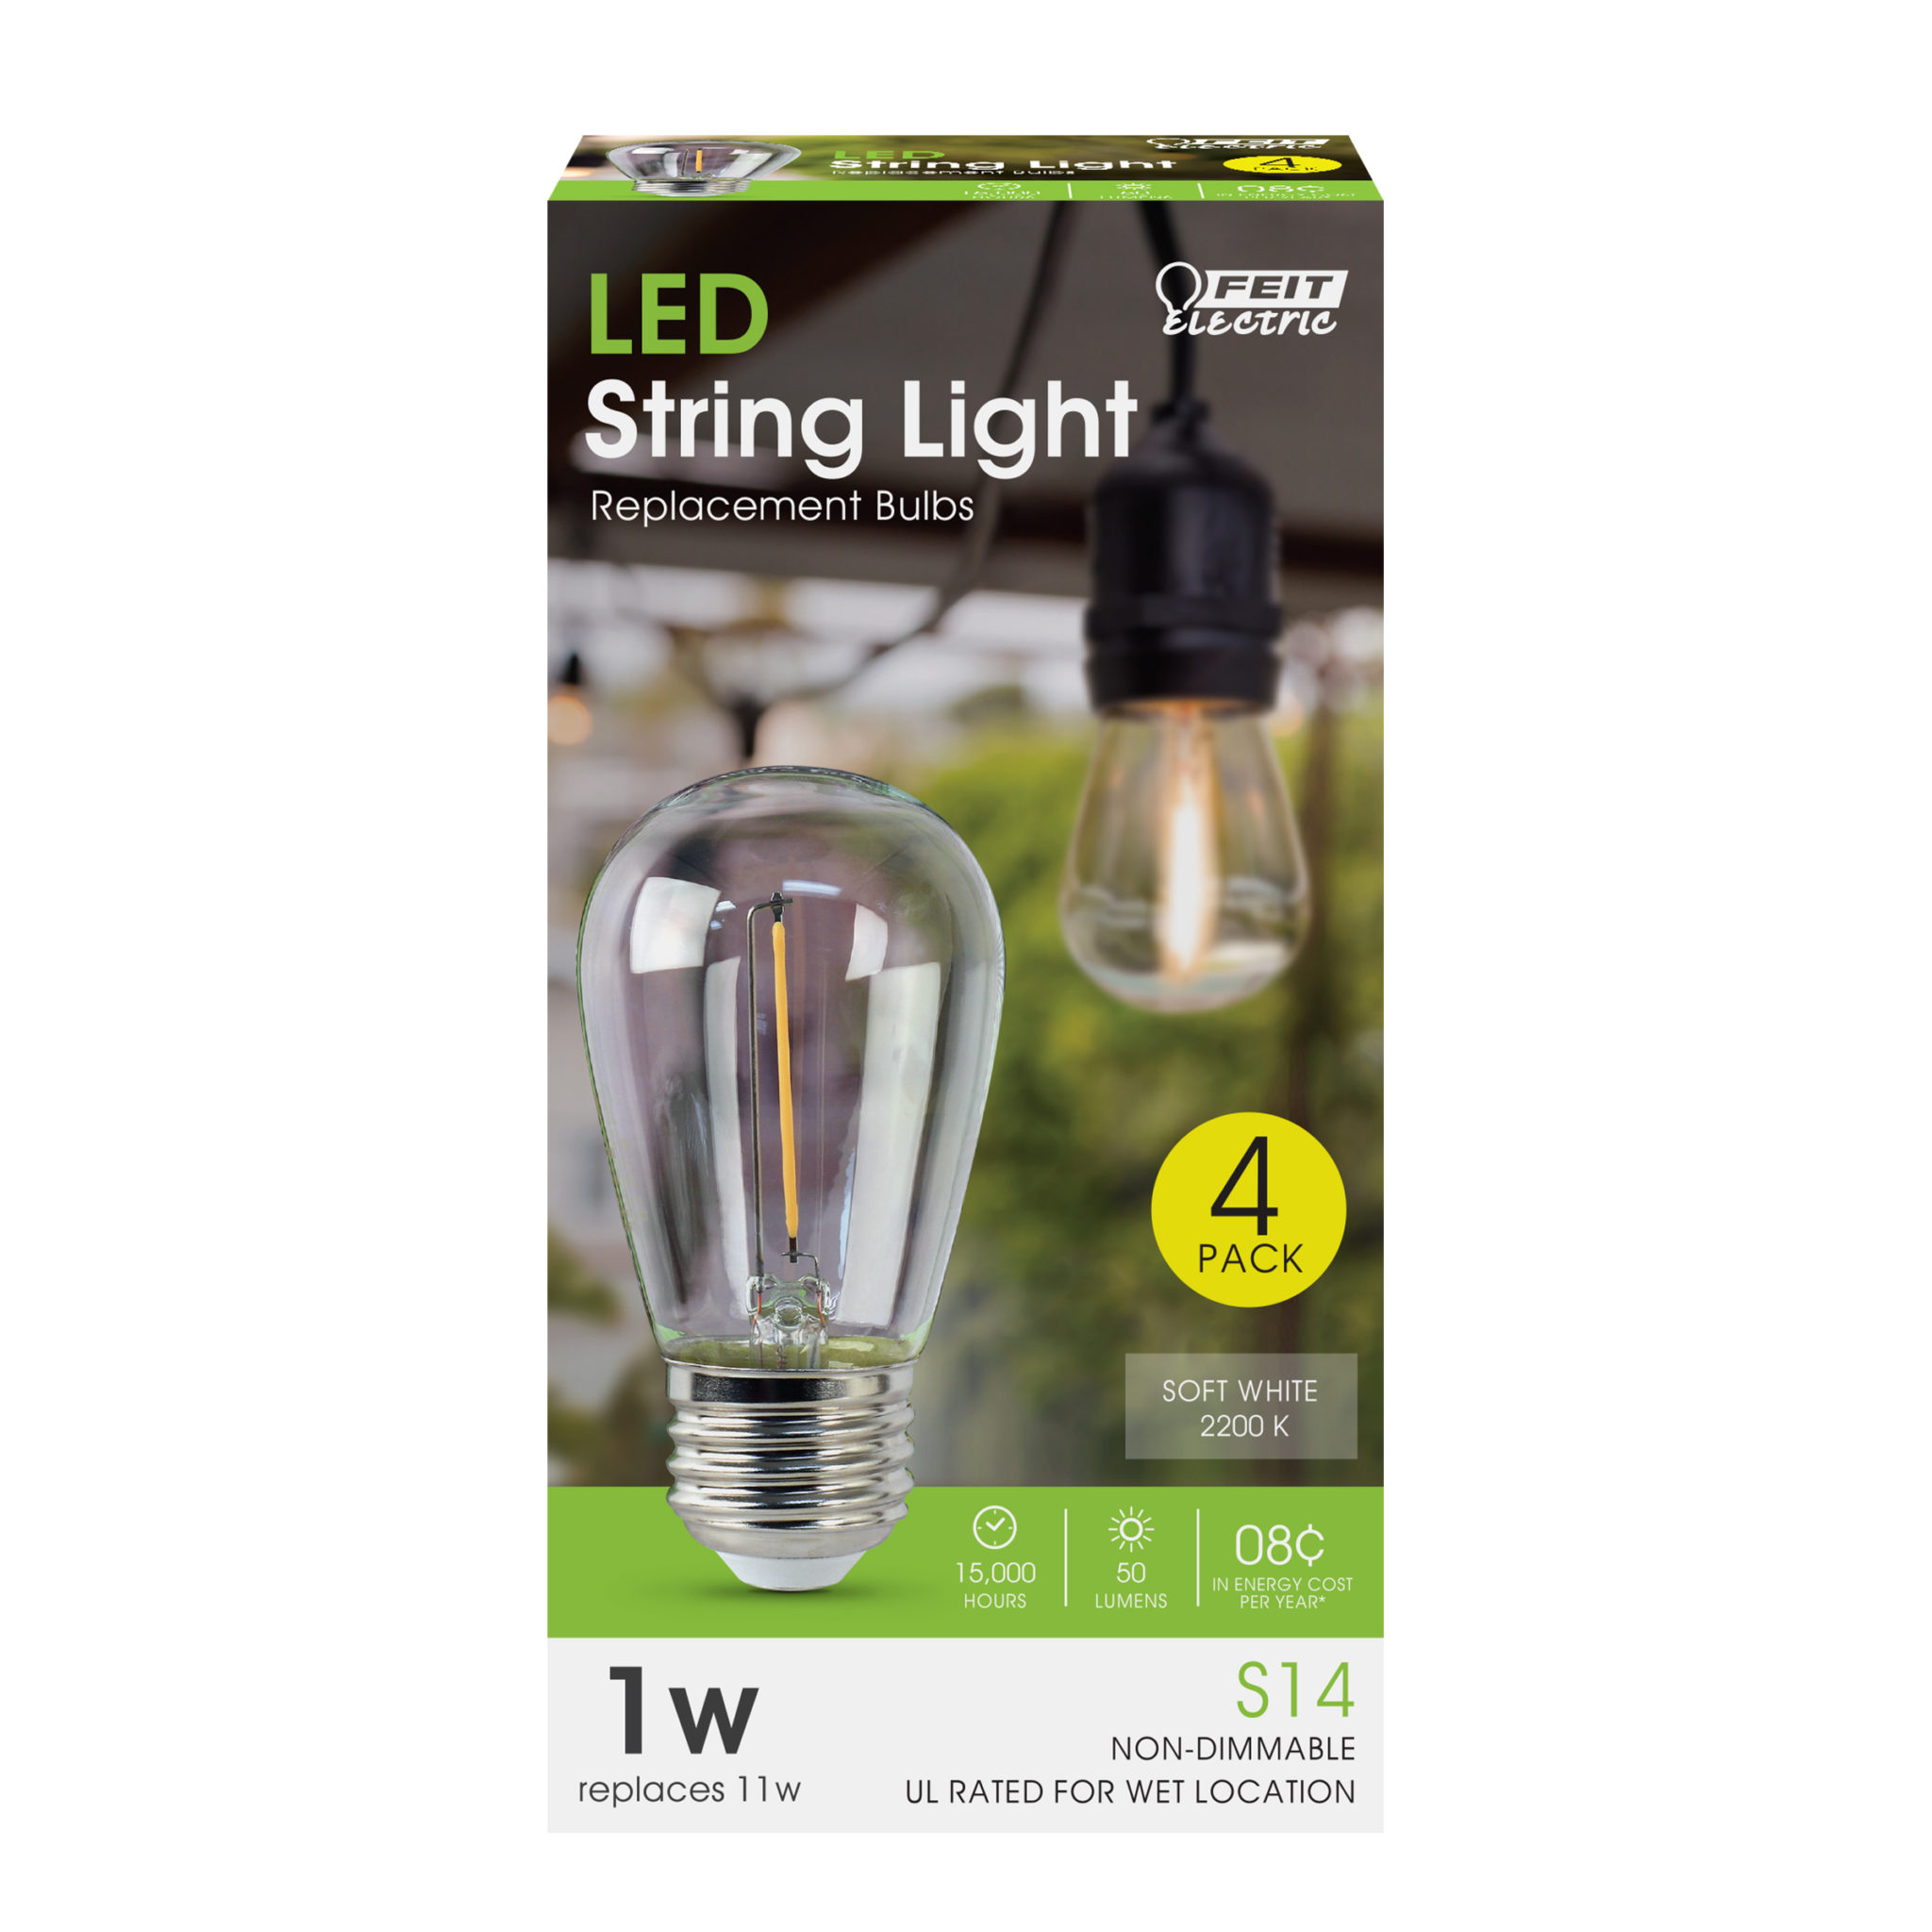 LED String Light Replacement Bulbs - Feit Electric